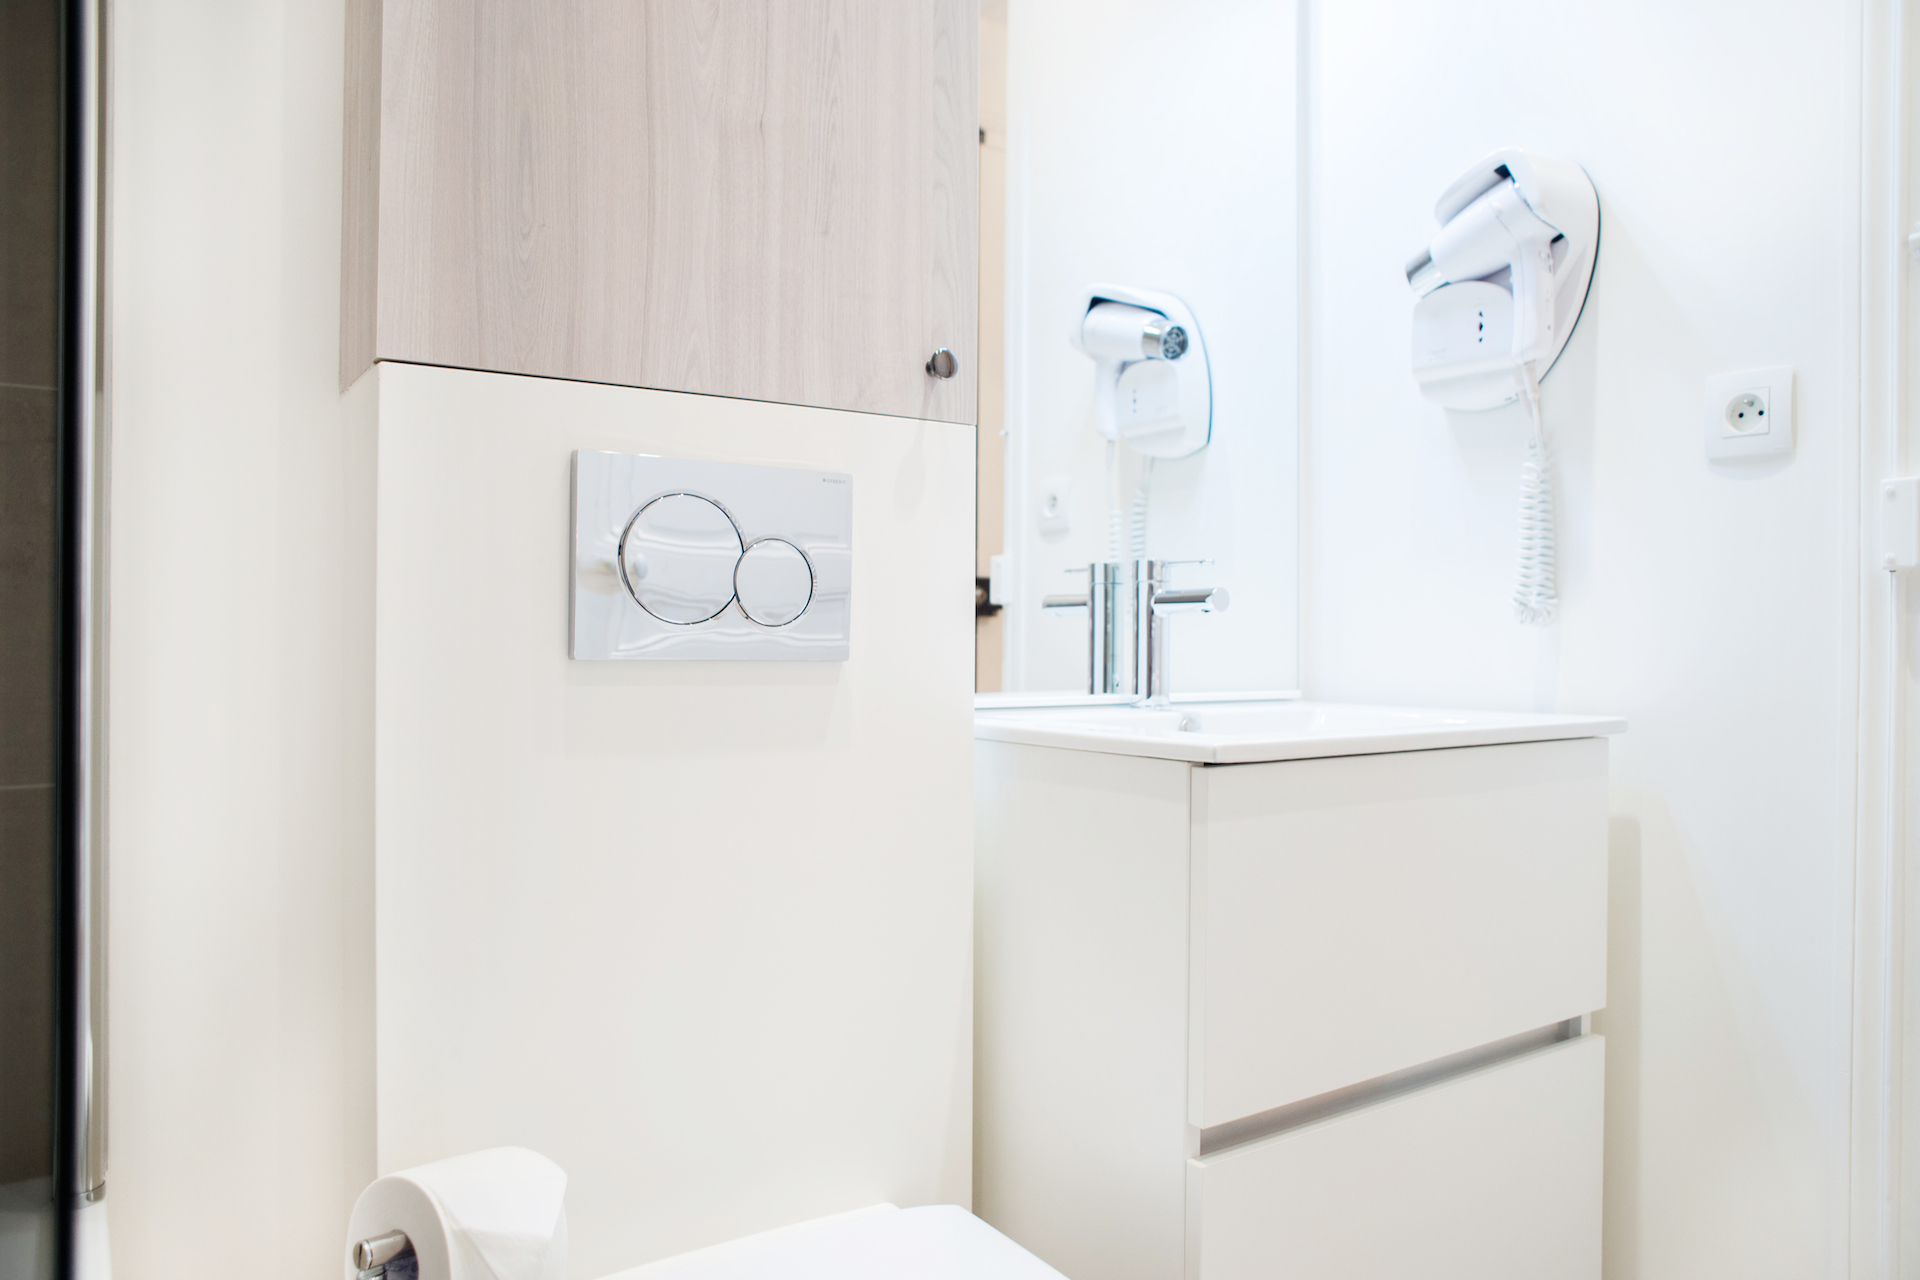 Bathroom amenities in the Vougeot vacation rental offered by Paris Perfect